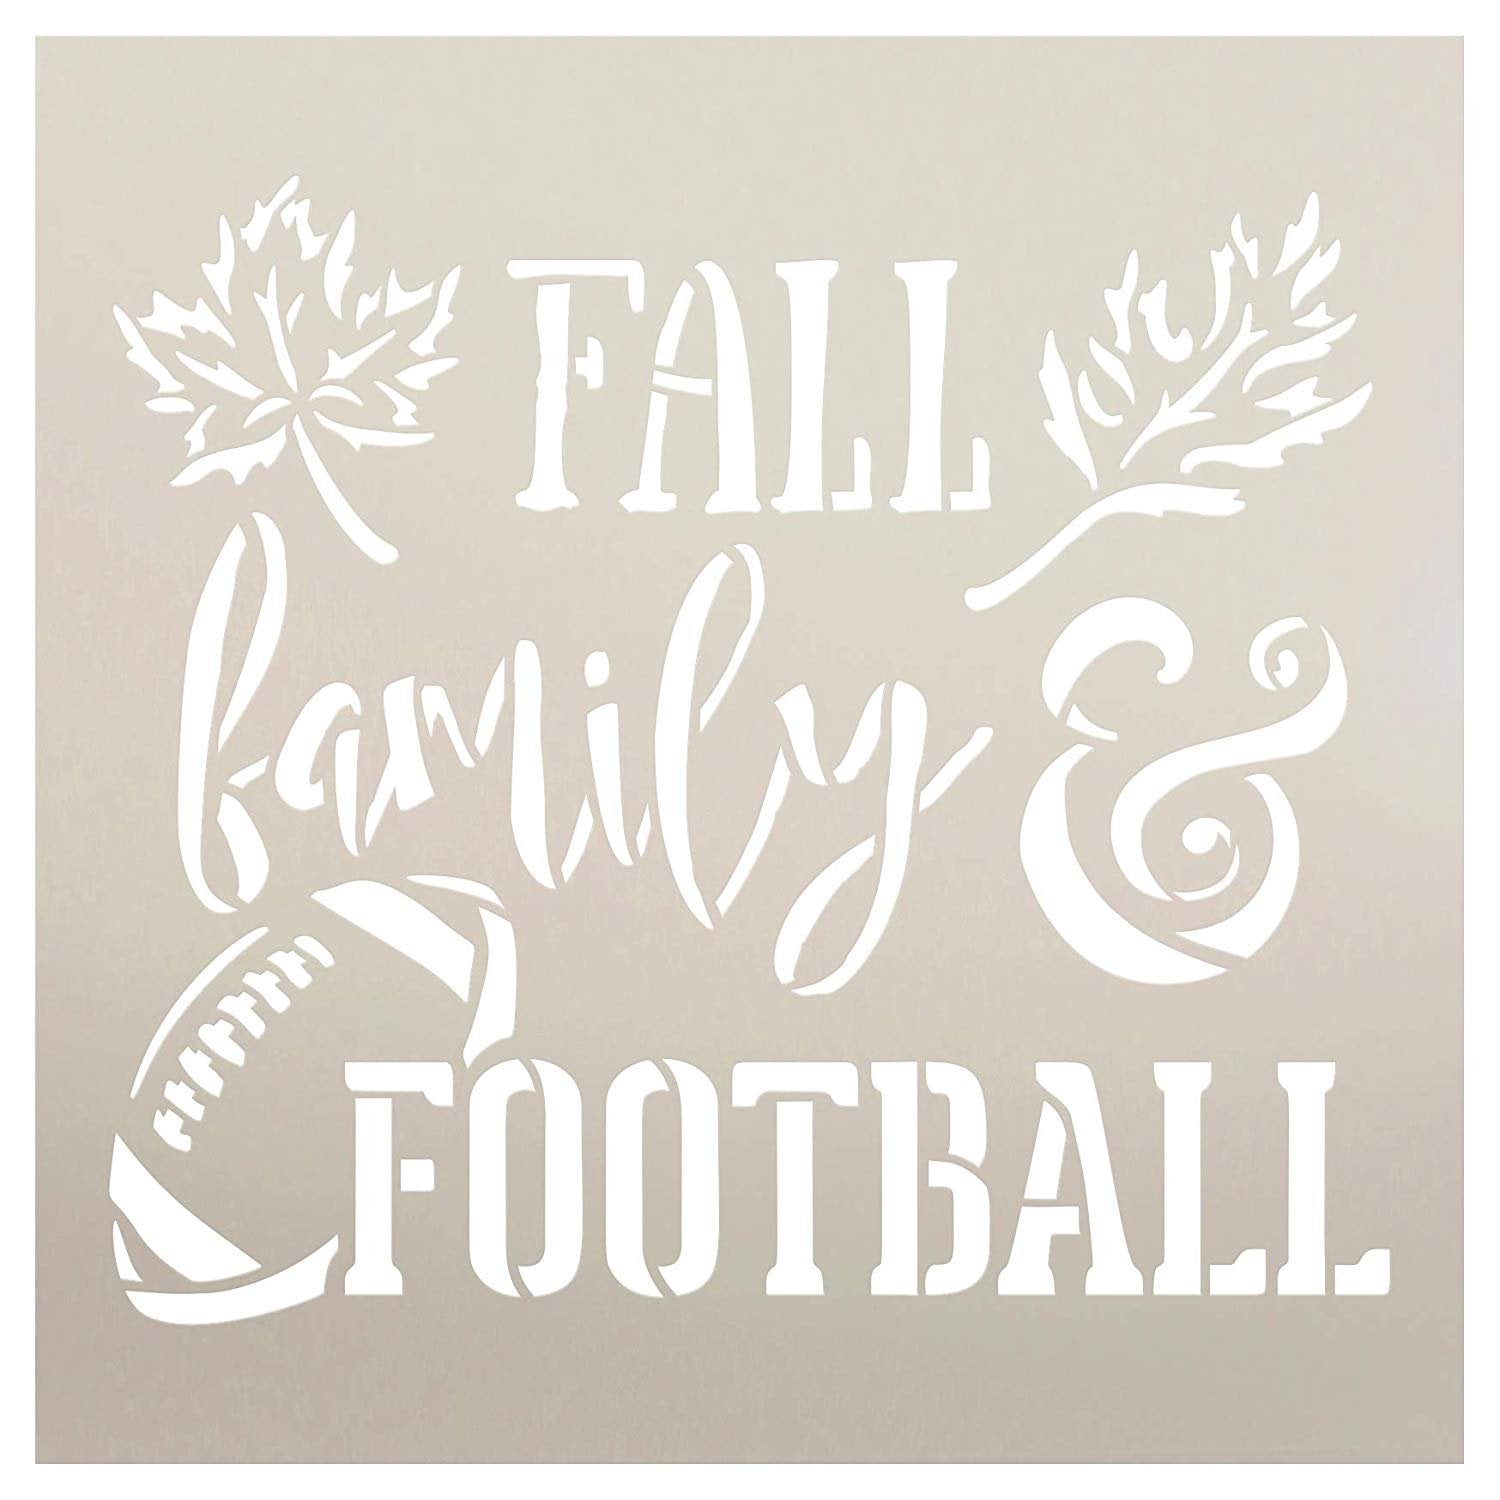 Fall Family and Football Stencil by StudioR12 | Wood Signs | Word Art Reusable | Mancave Sports Room | Painting Chalk Mixed Media Multi-Media | DIY Home - Choose Size